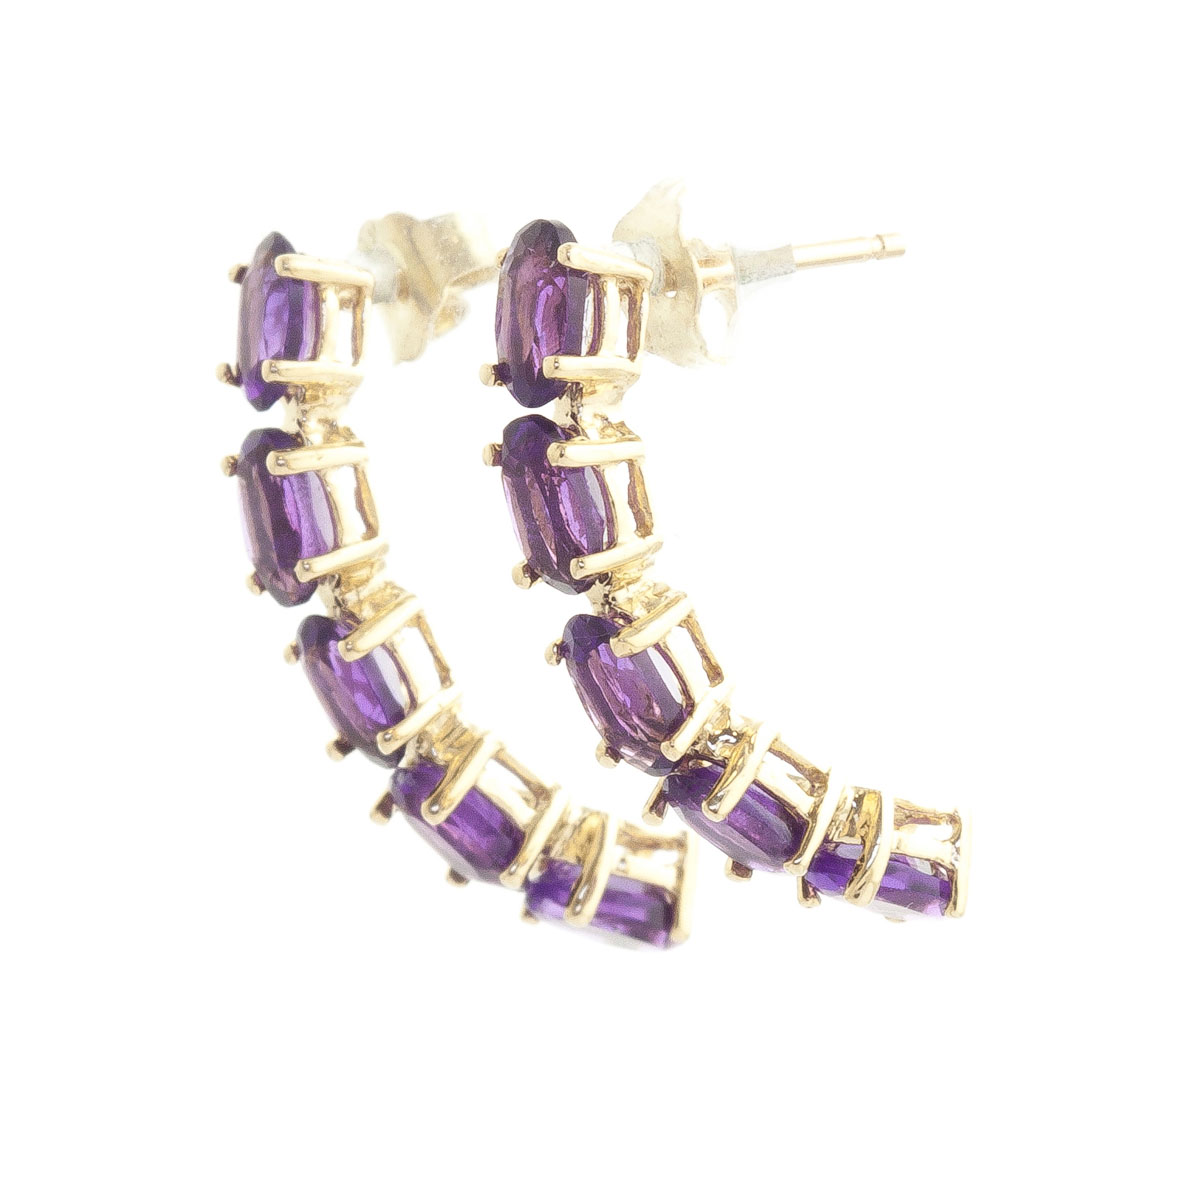 Amethyst Linear Stud Earrings 2.5 ctw in 9ct Gold